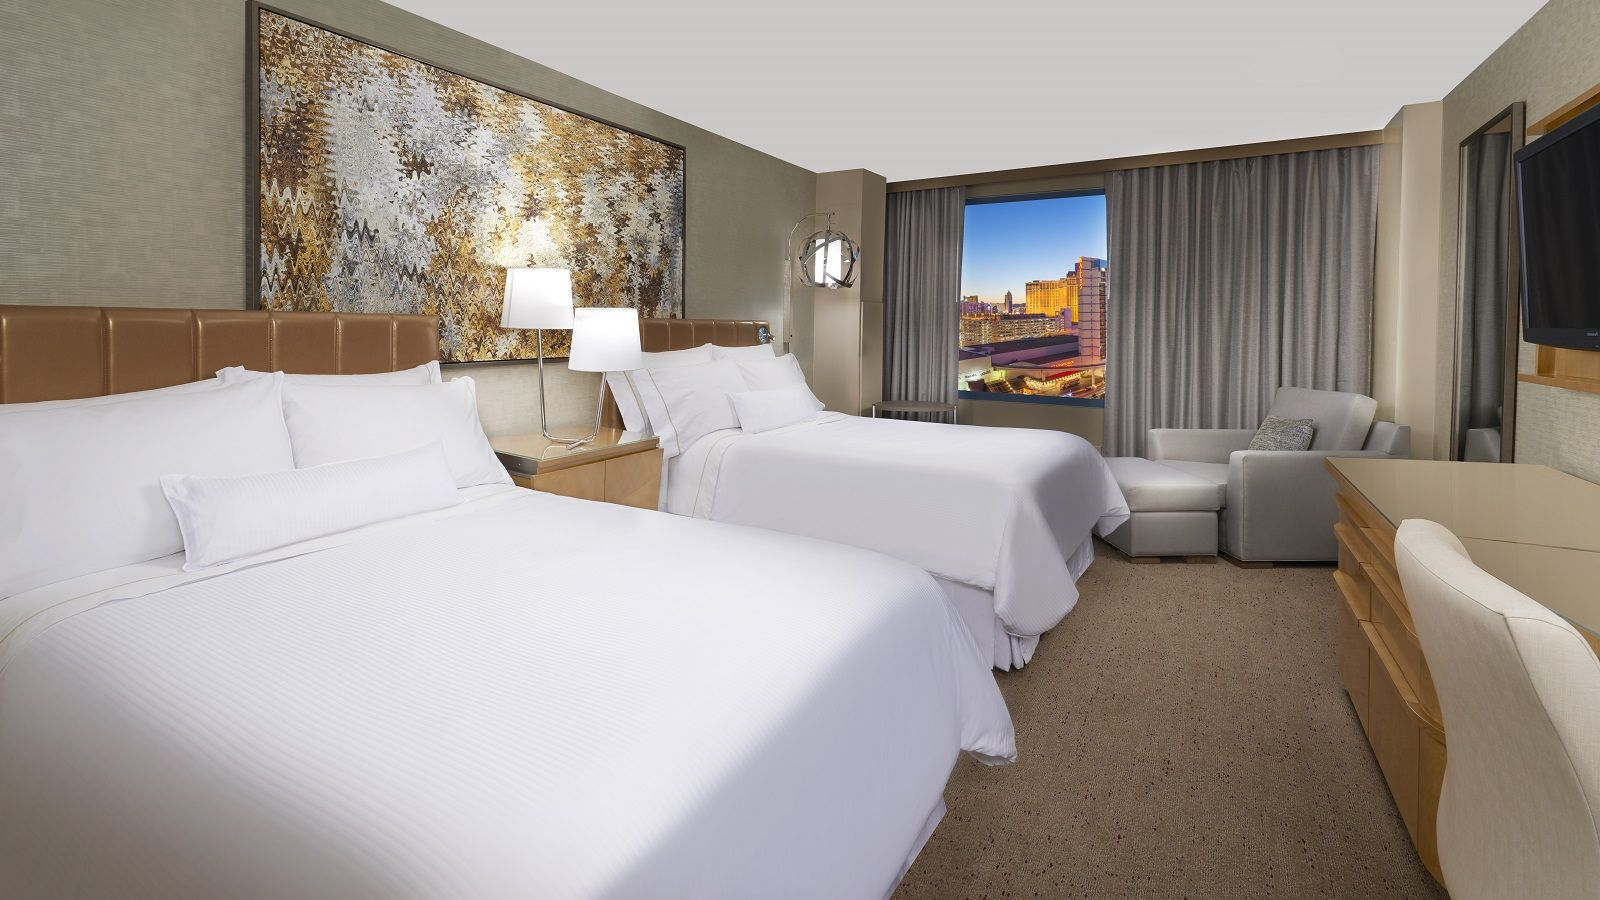 Las Vegas Hotel Rooms